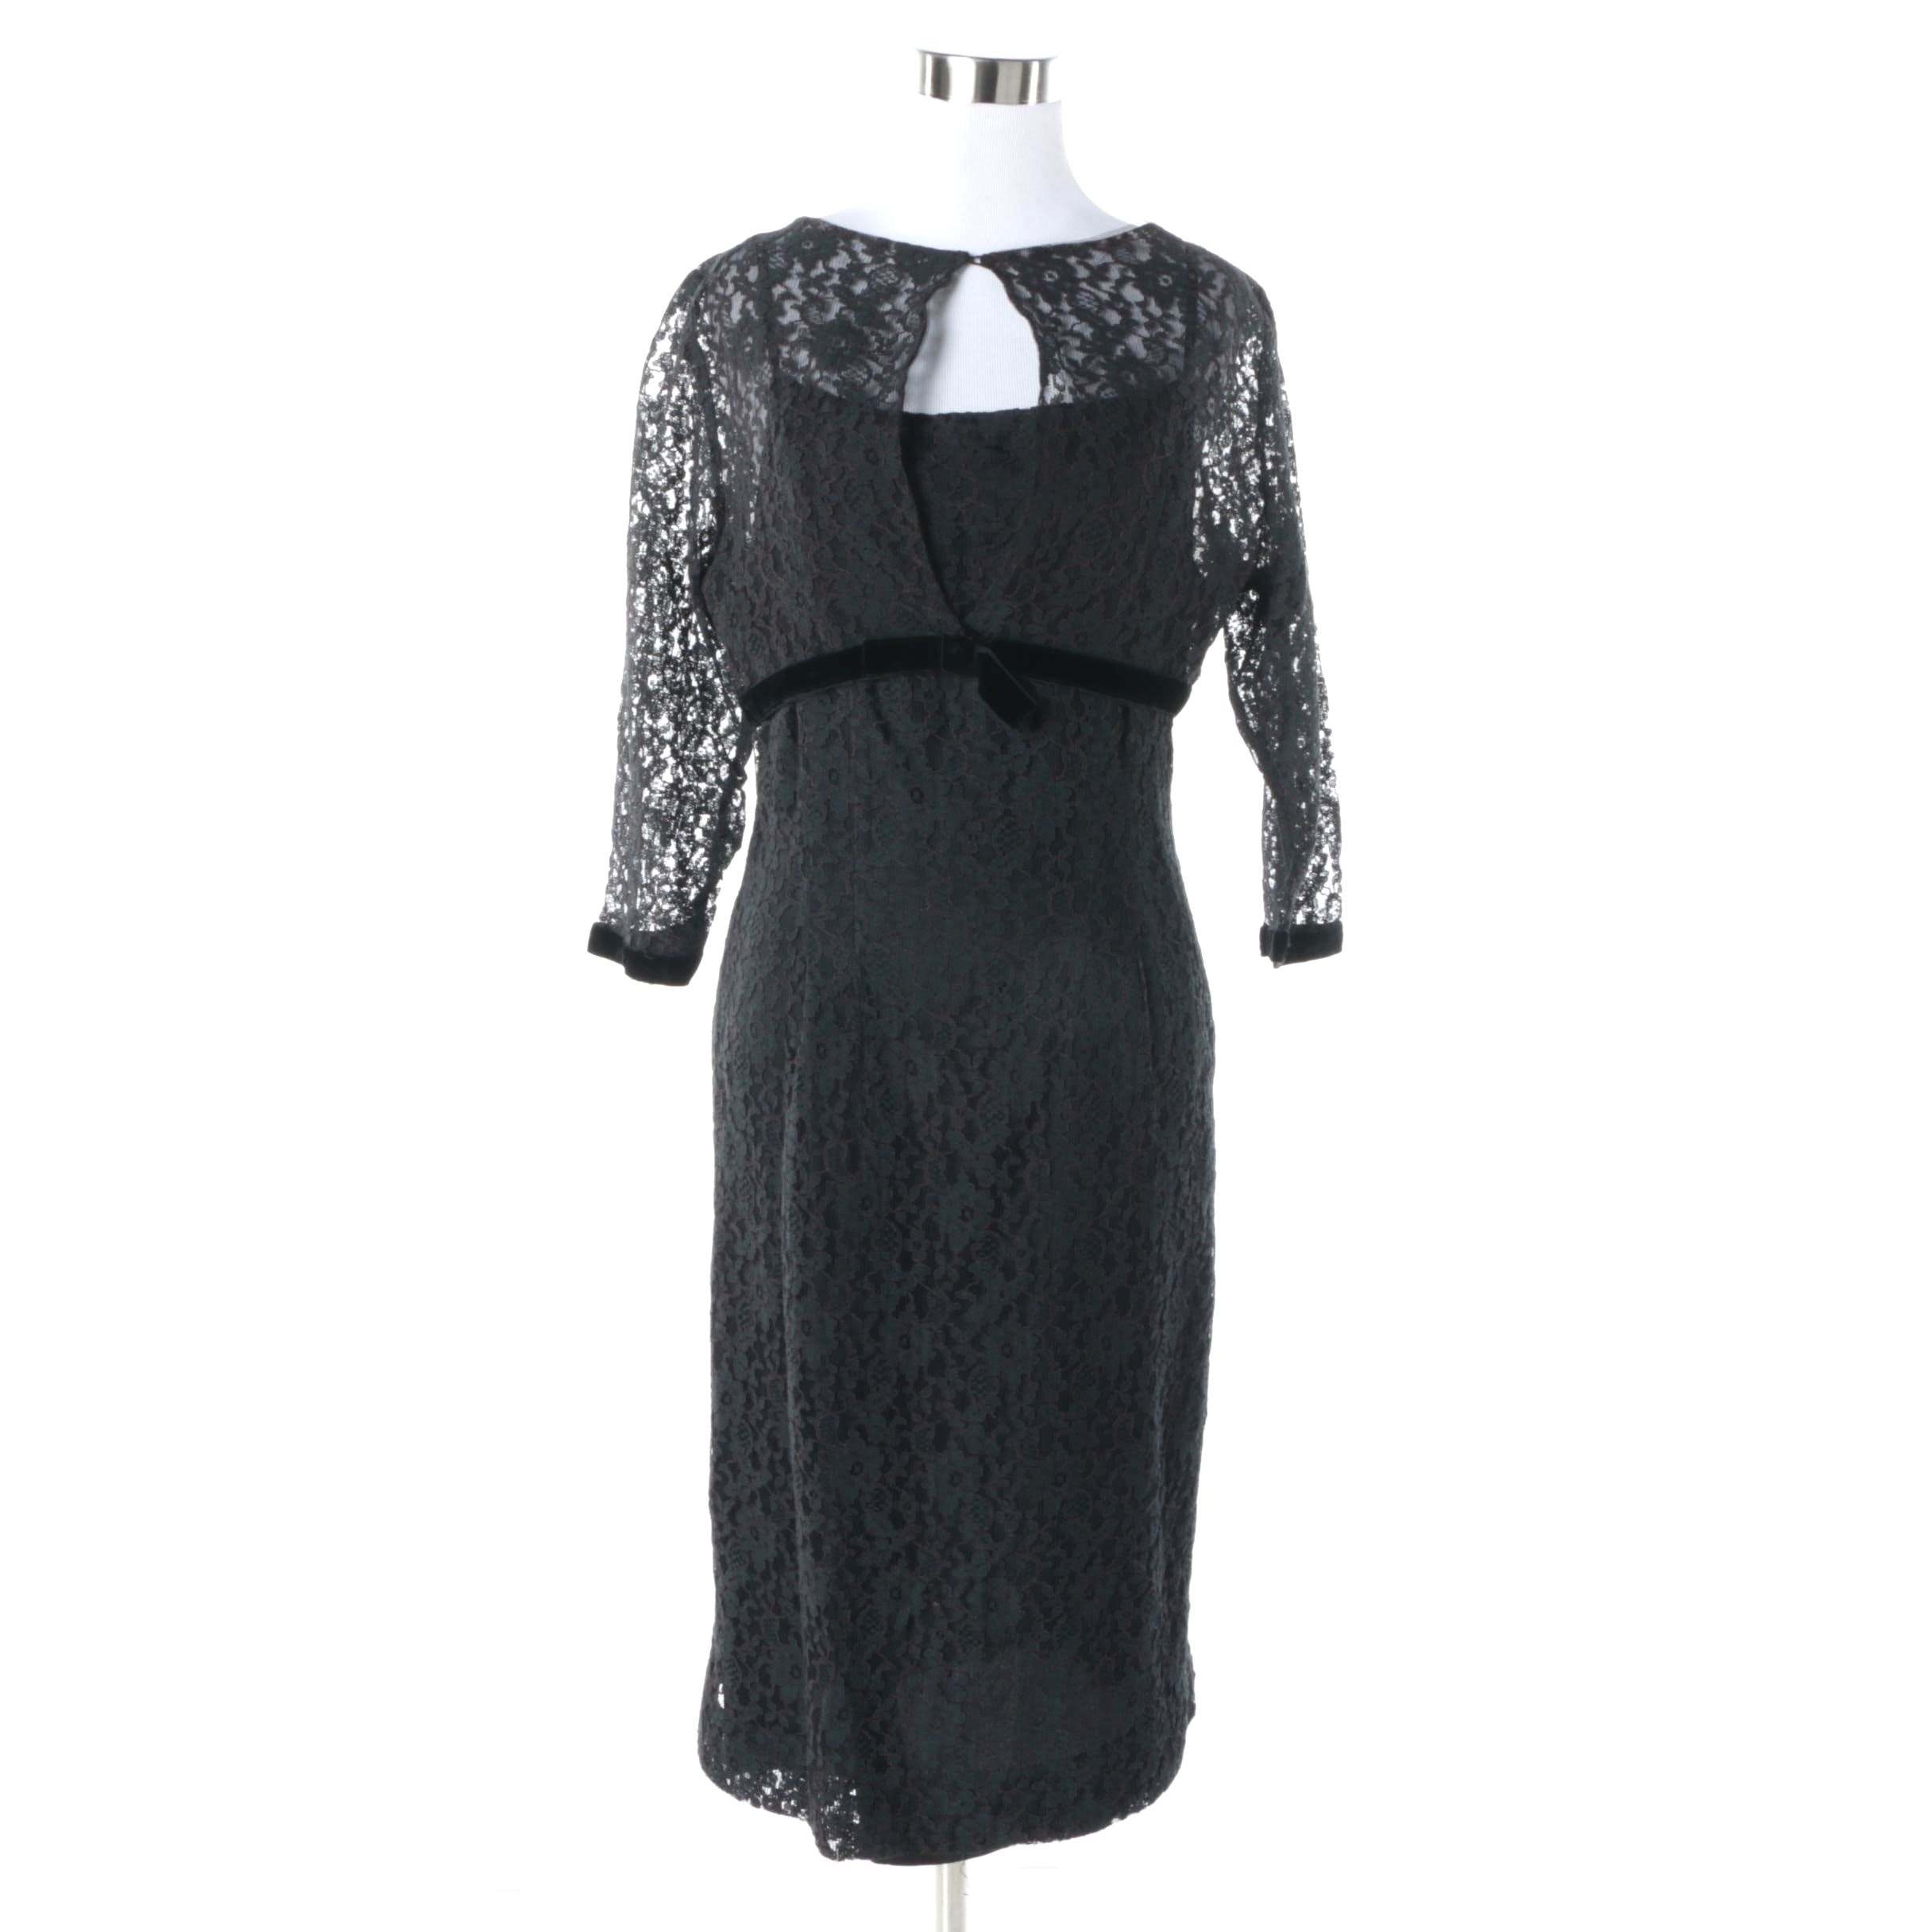 Circa 1950s Vintage Black Lace and Velvet Sheath Dress with Bolero